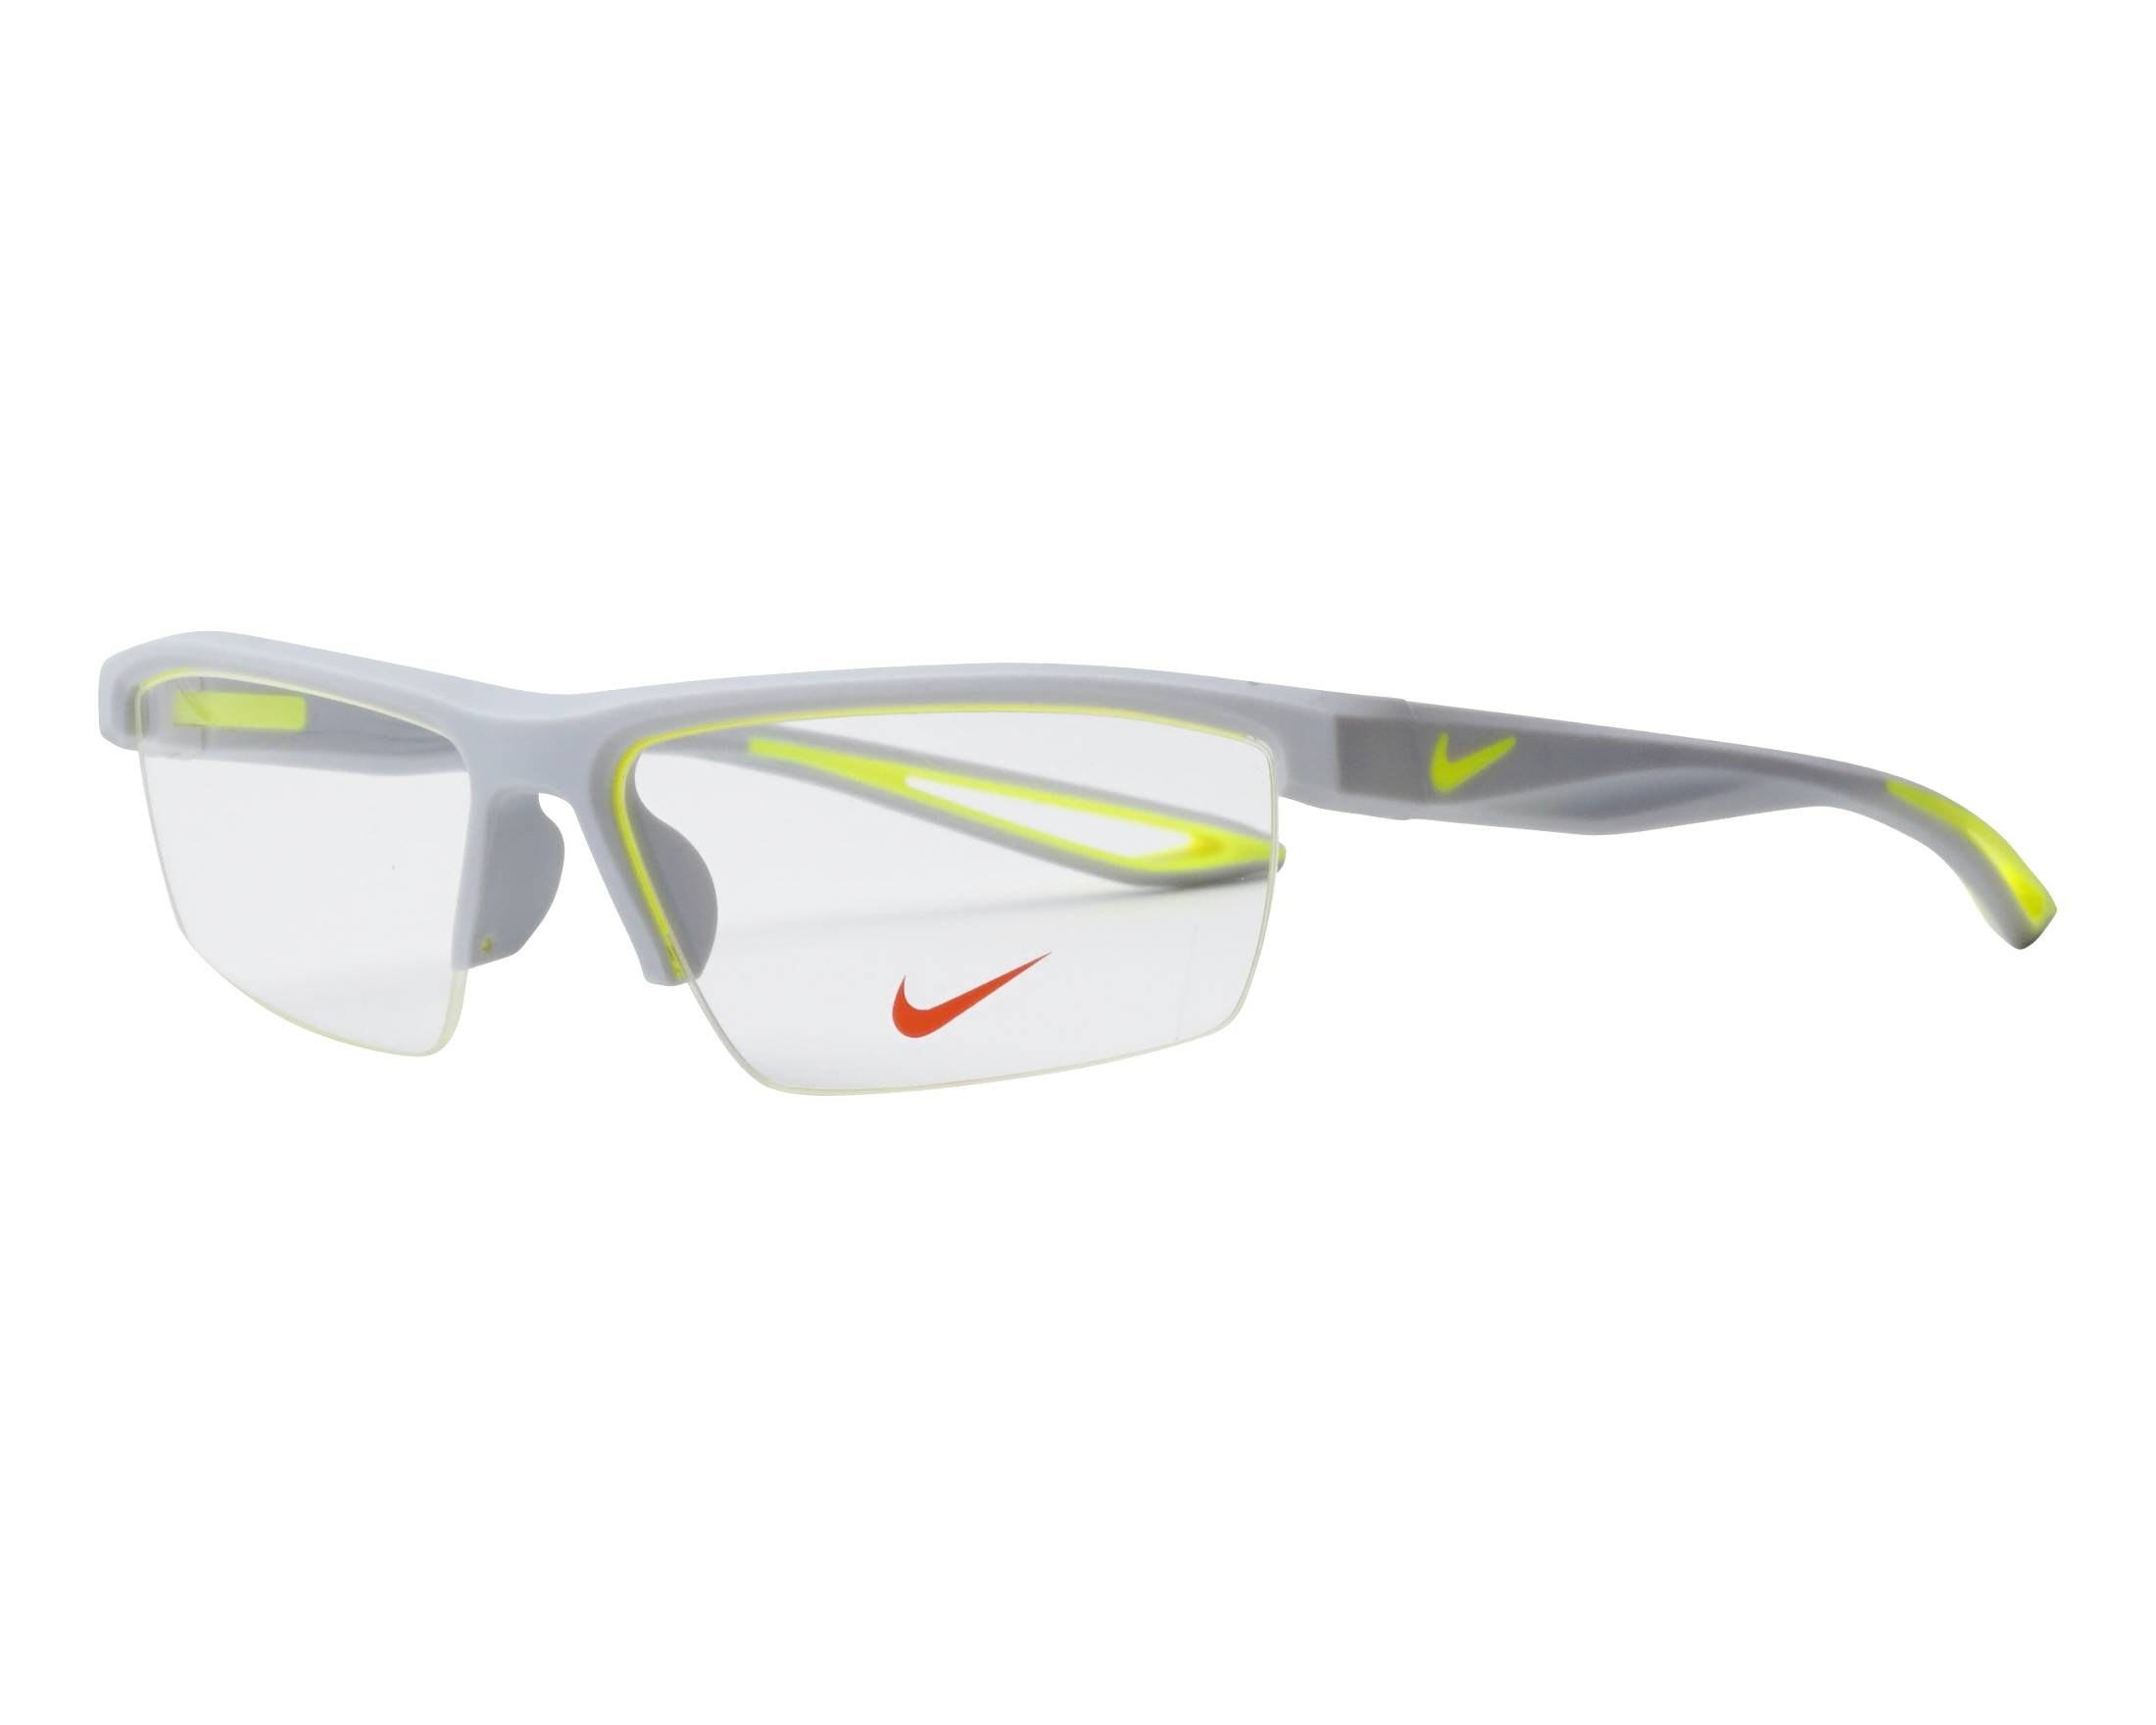 f6678d1fcfe2 eyeglasses Nike 7079 040 57-15 Grey Yellow profile view